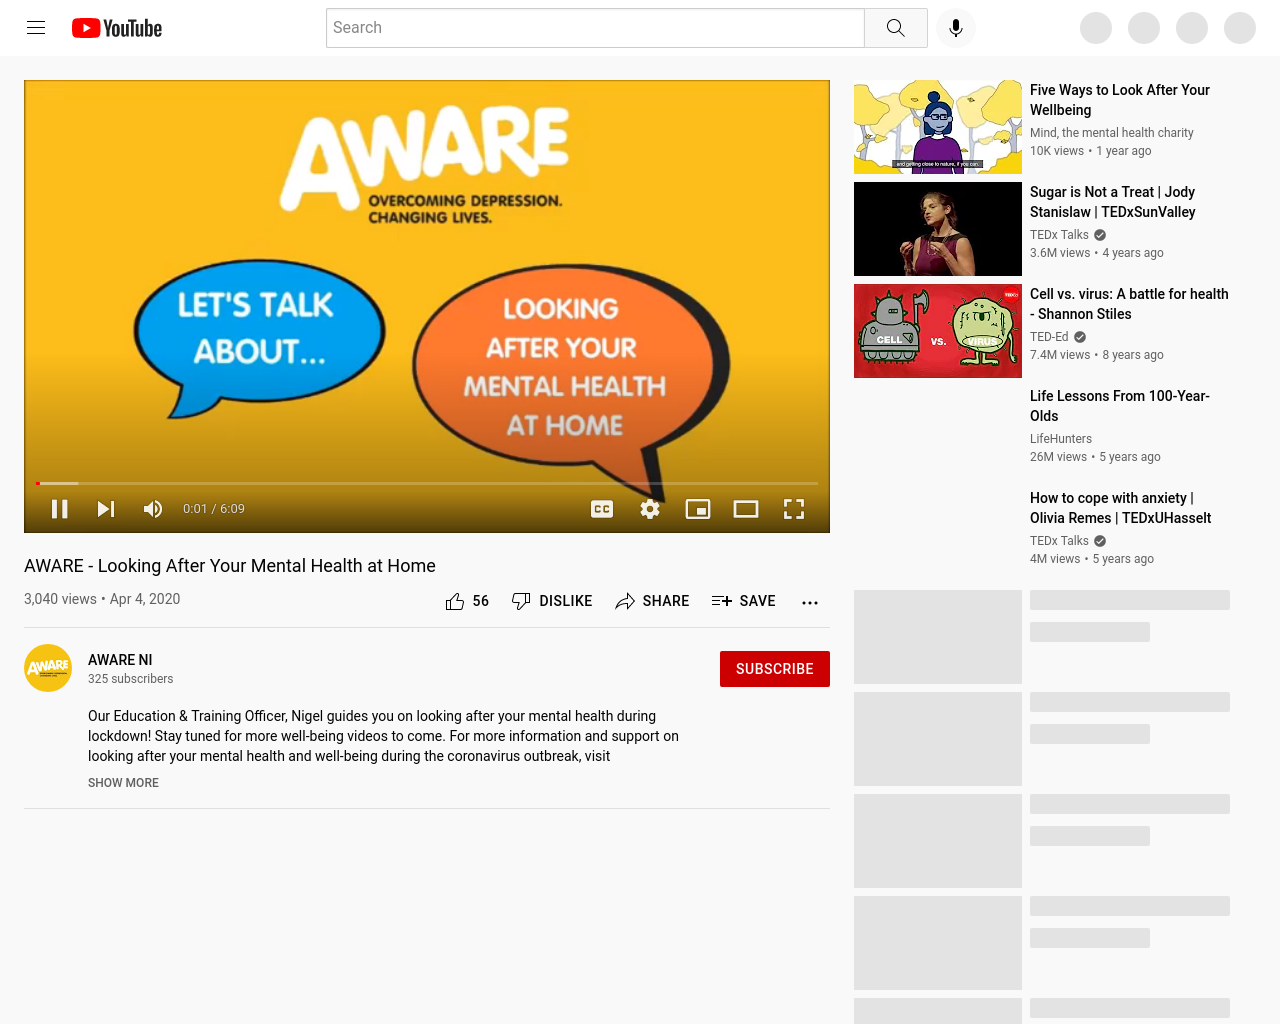 AWARE NI Video